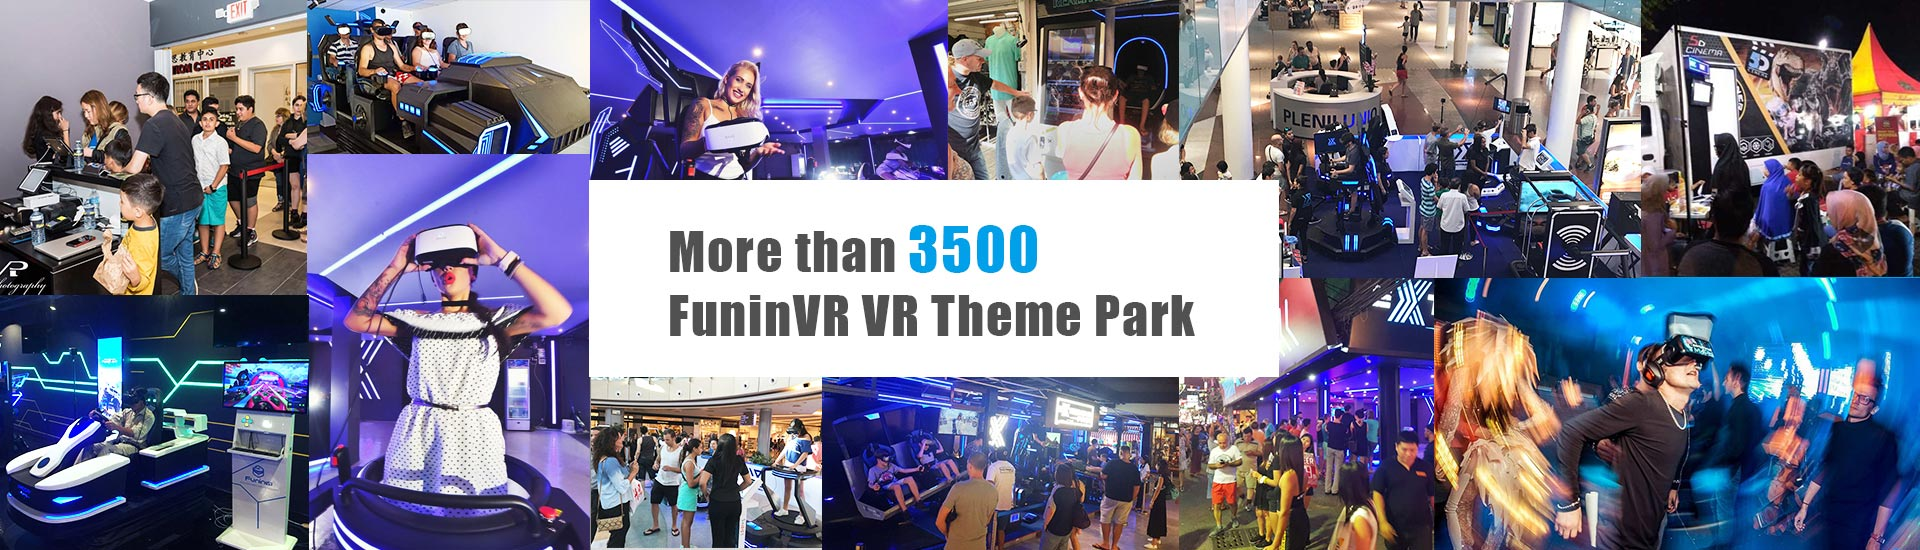 FuninVR 7D Interactive Cinema